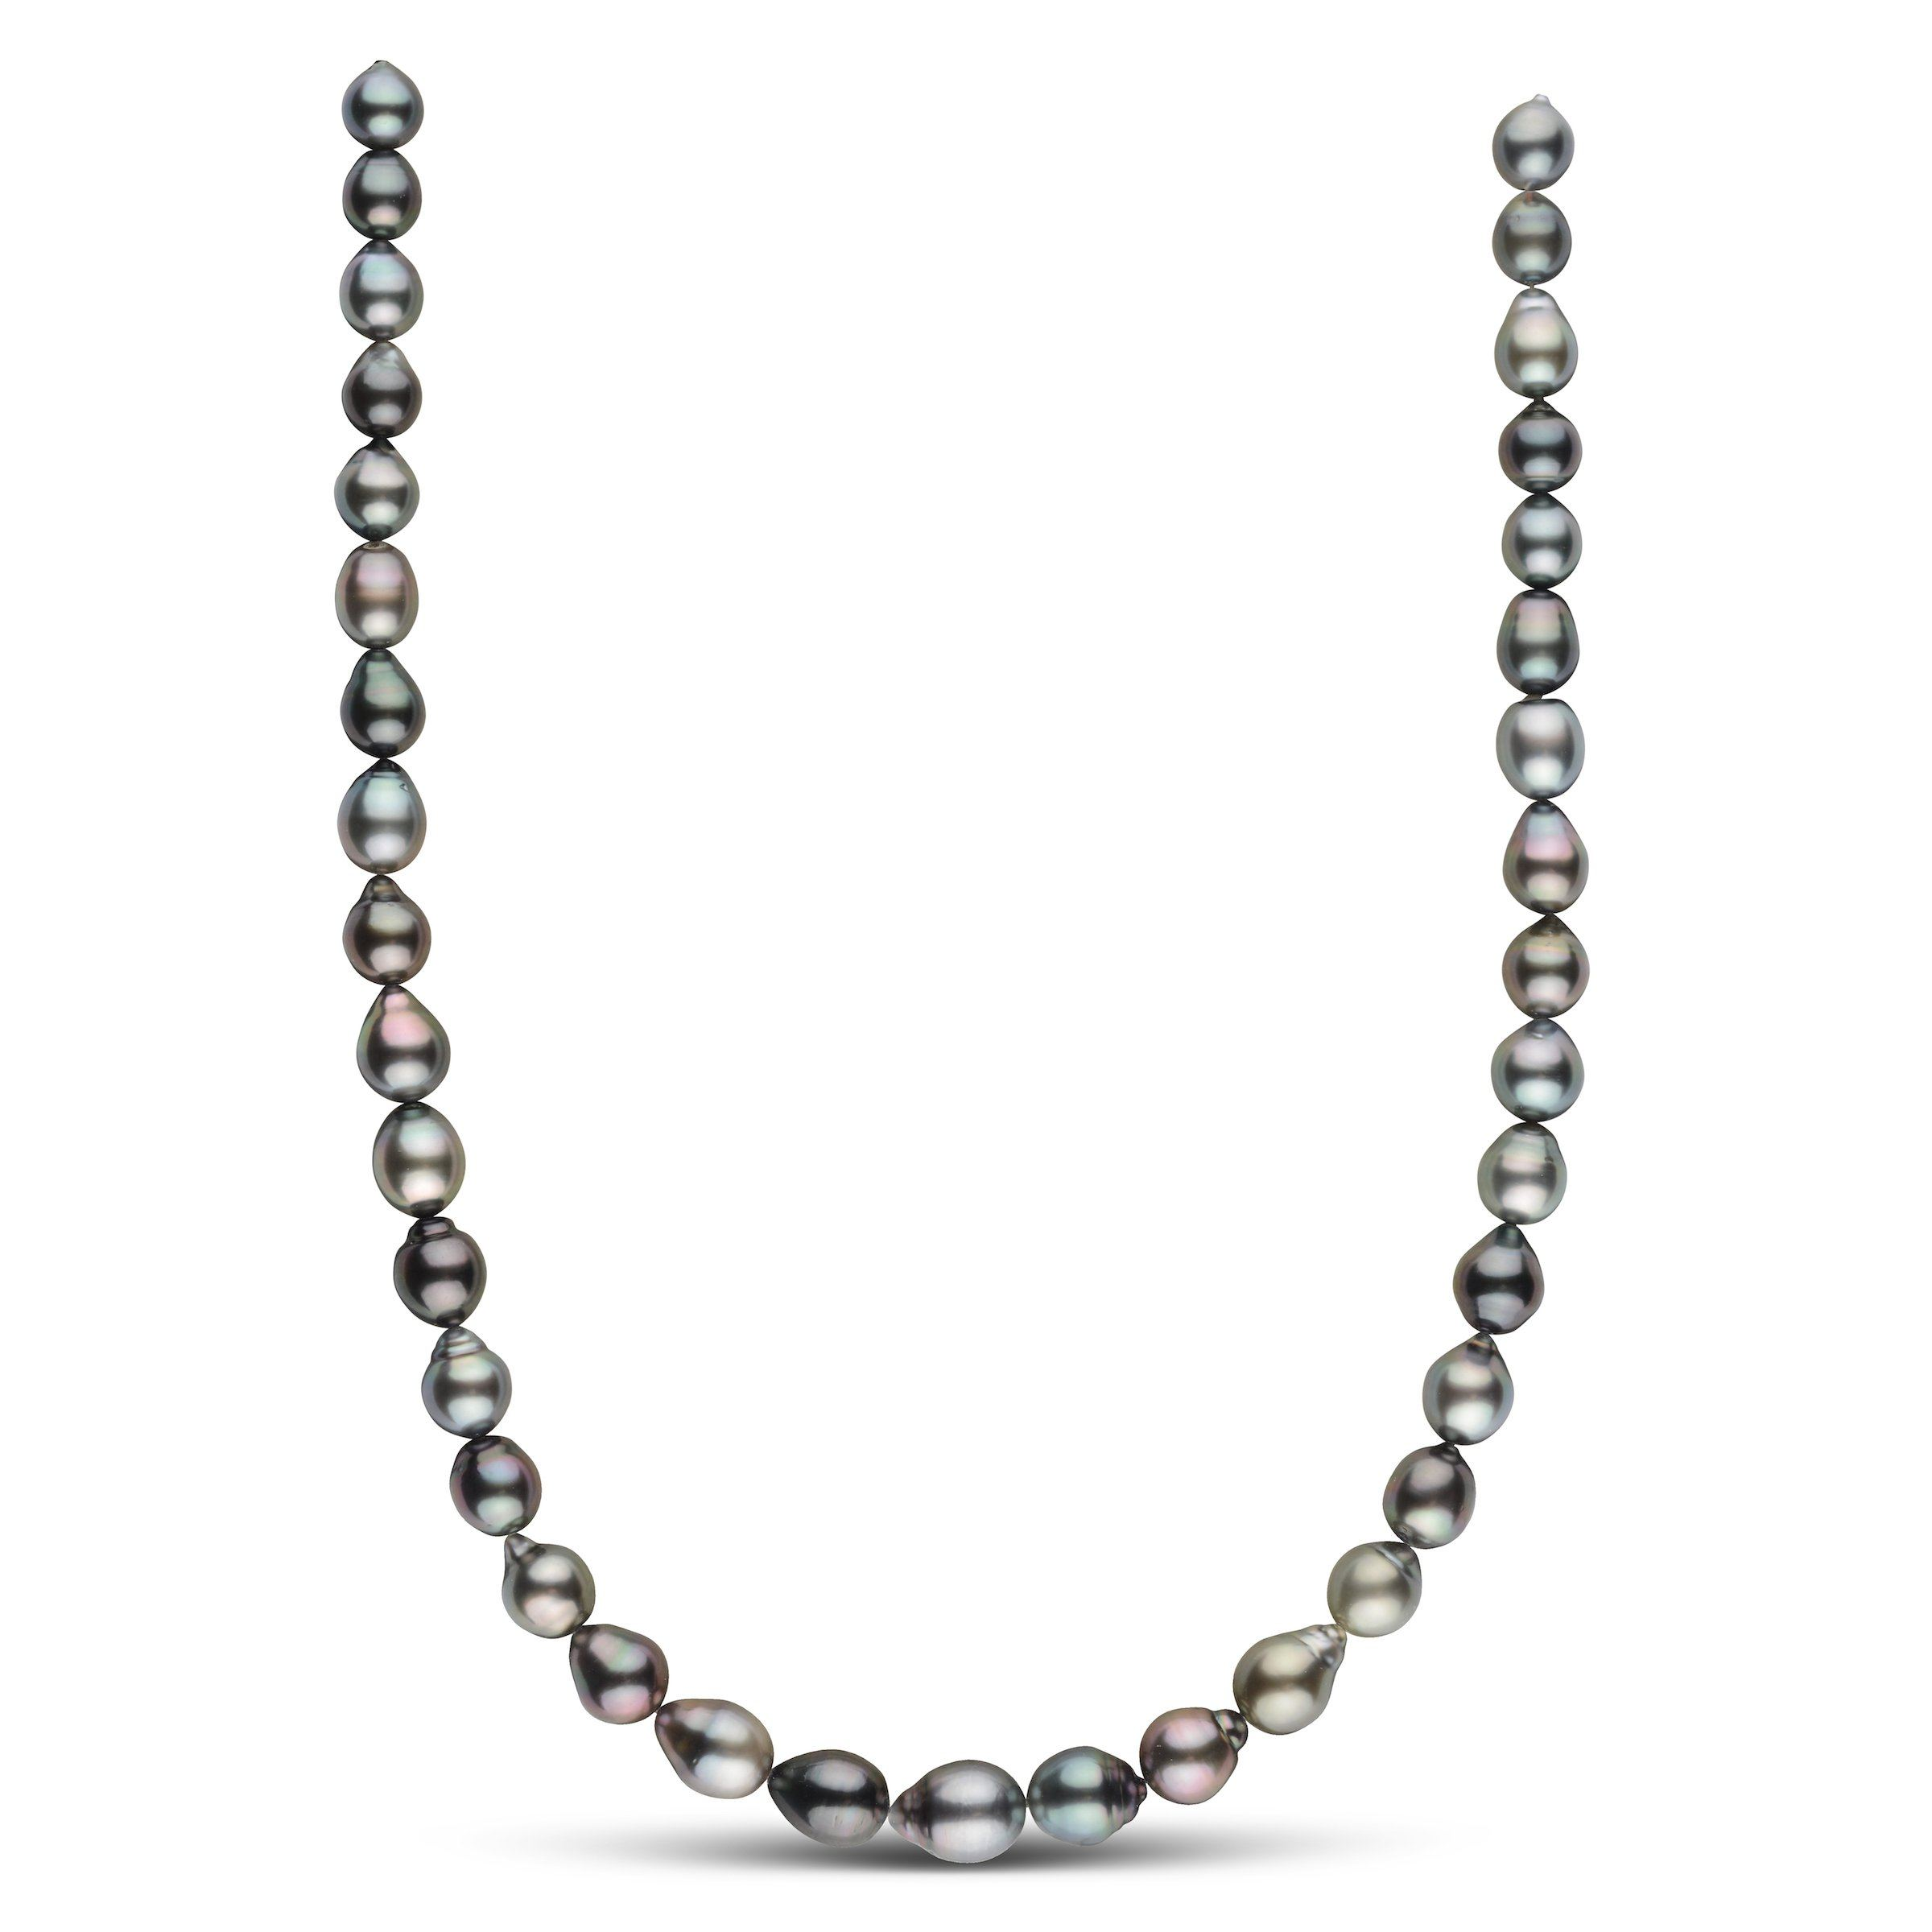 8.7-10.7 mm AAA Tahitian Drop Pearl Necklace